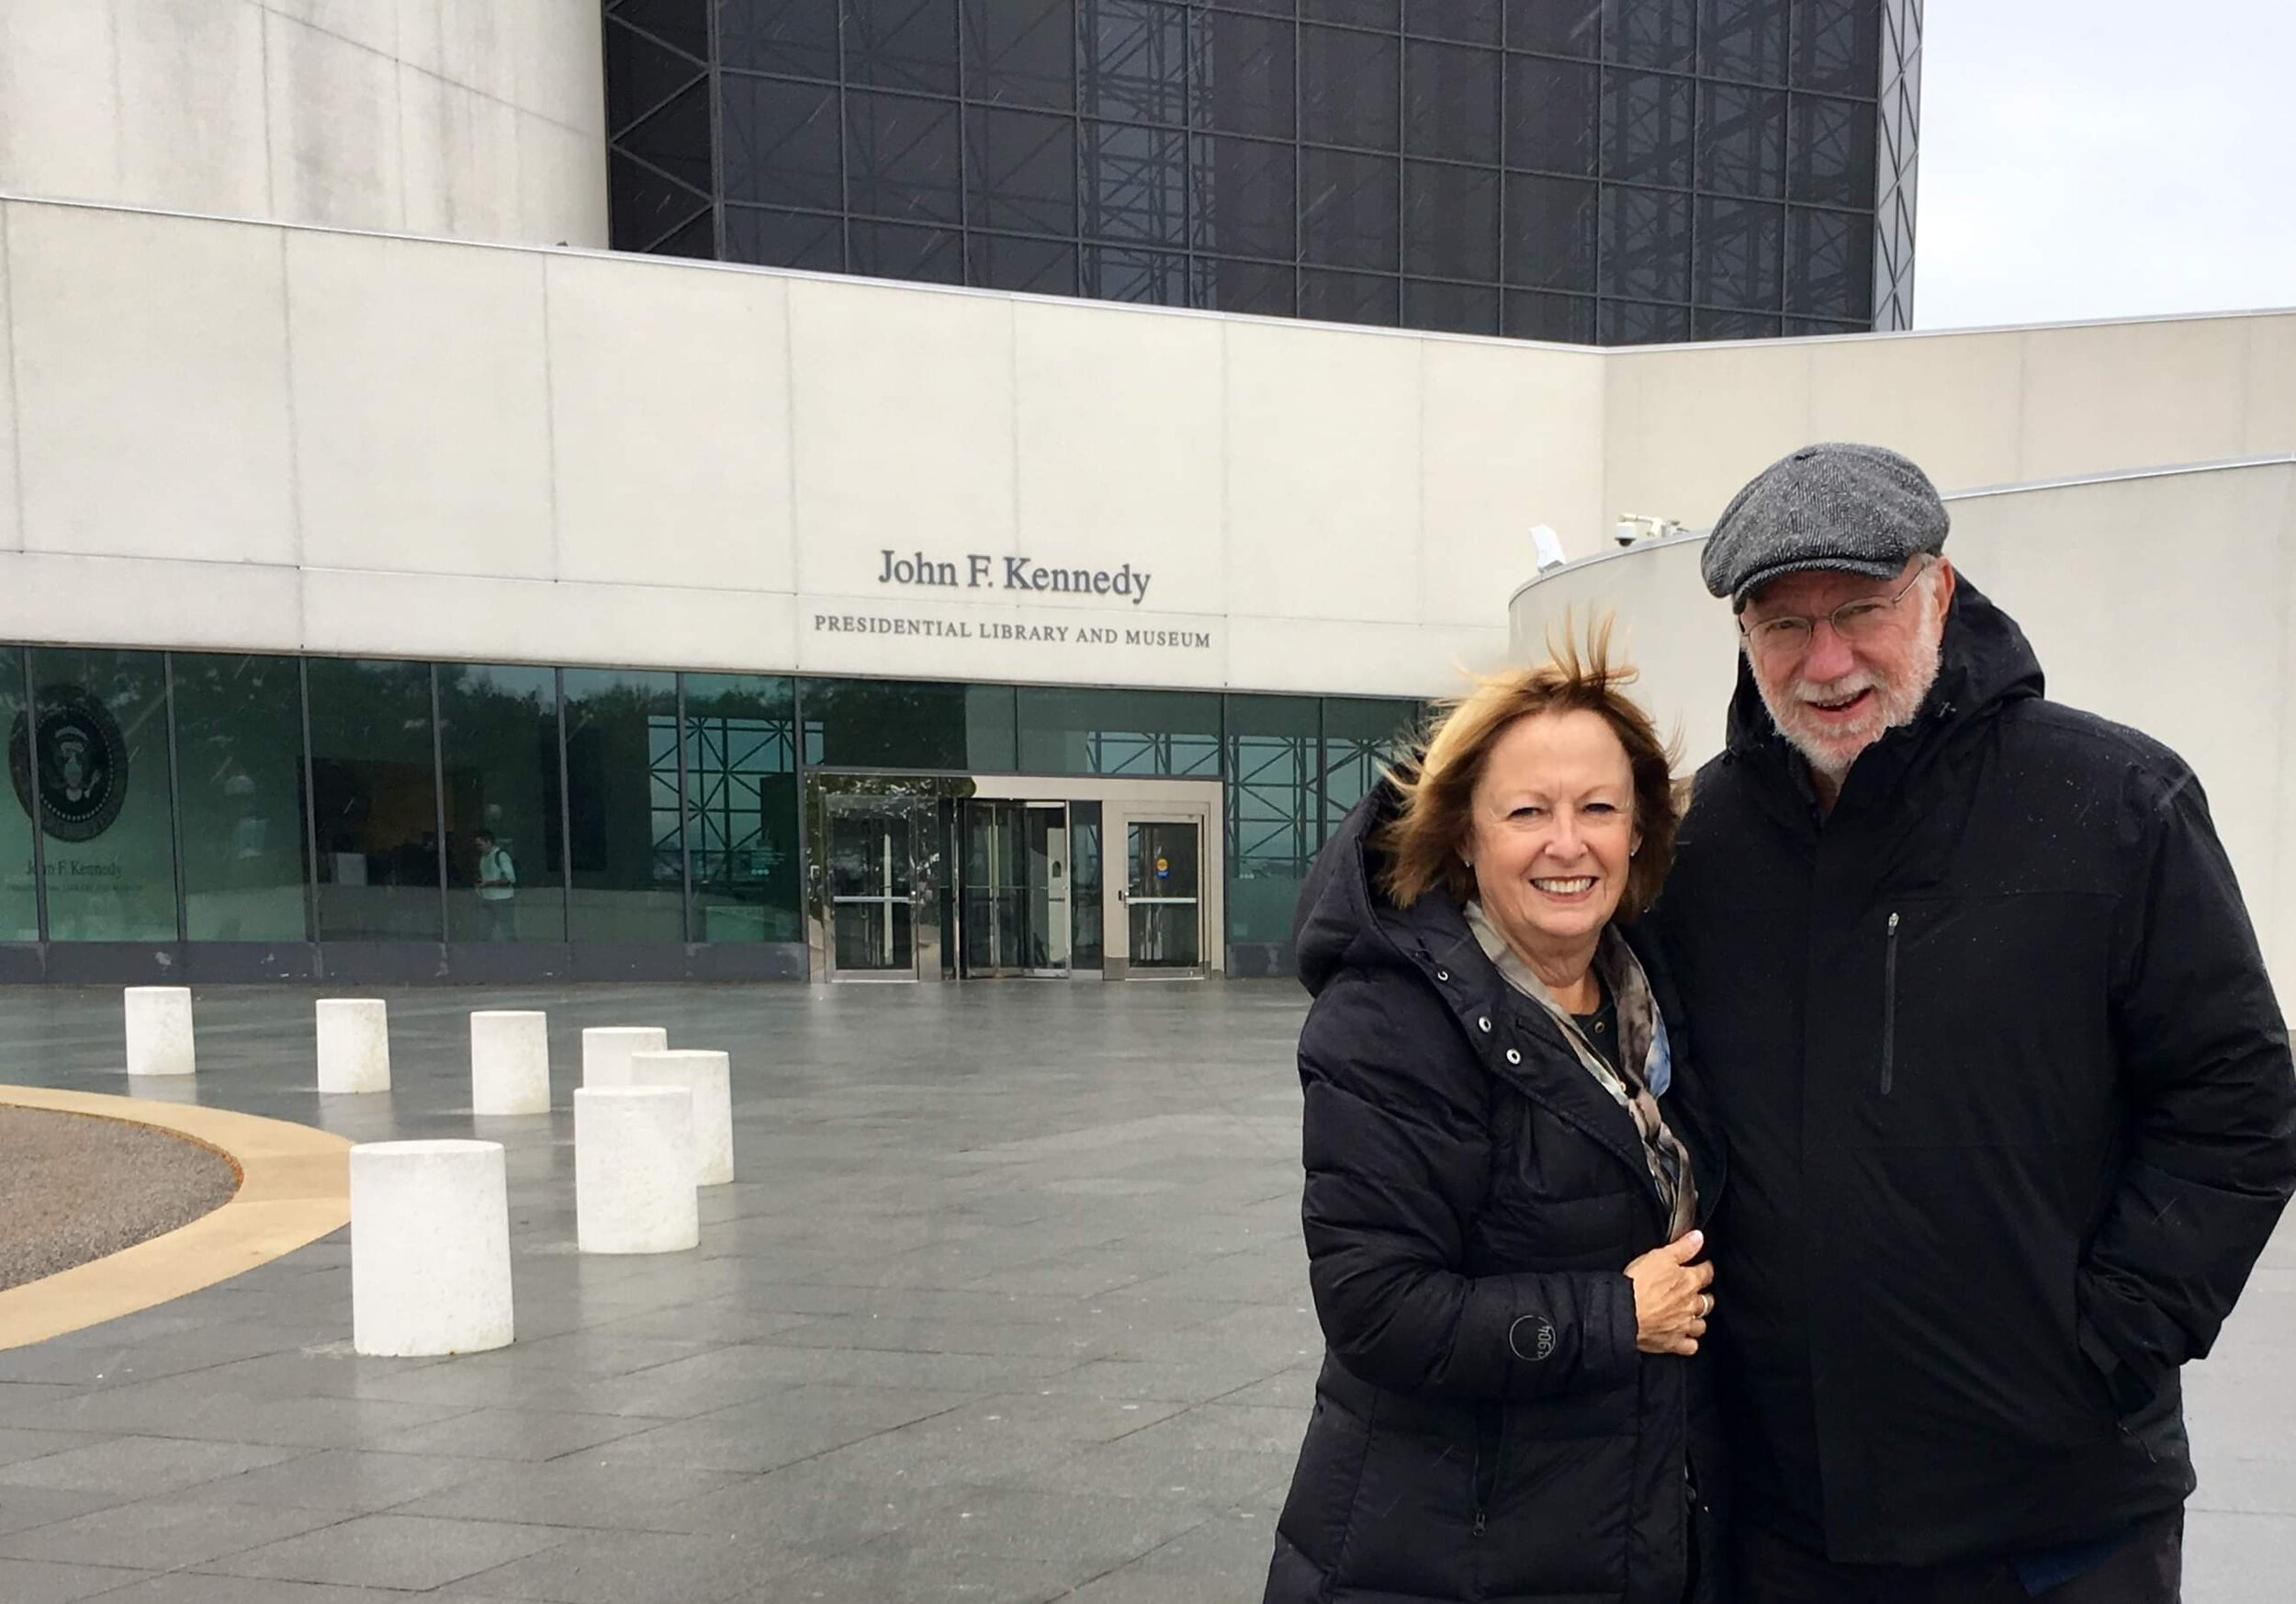 The JFK Presidential Library and Museum